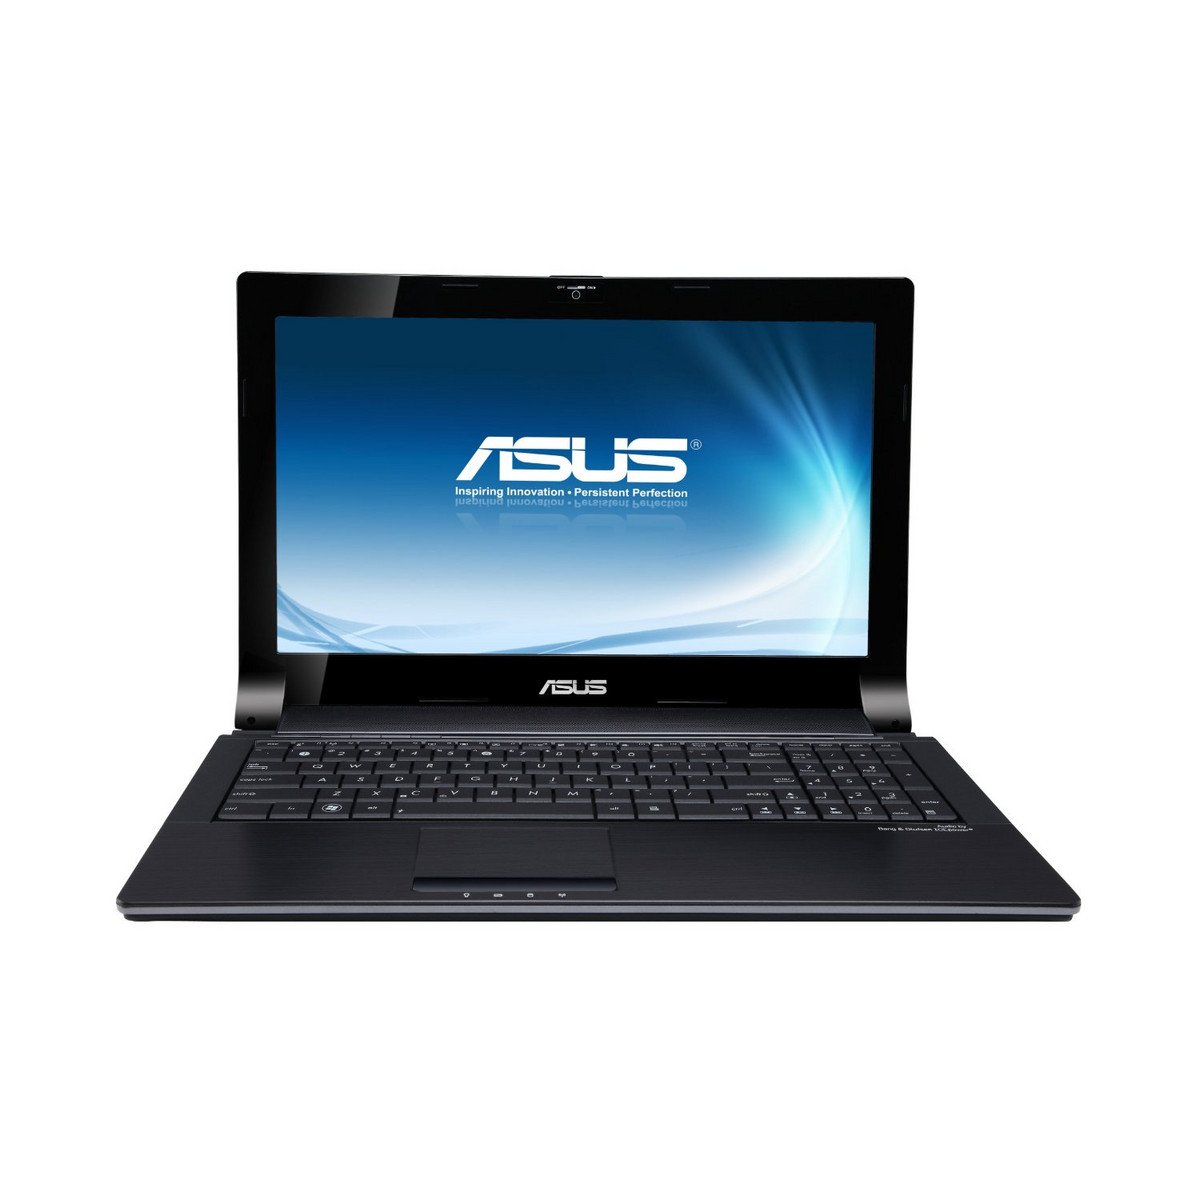 Driver for Asus N53SV NVIDIA Graphics